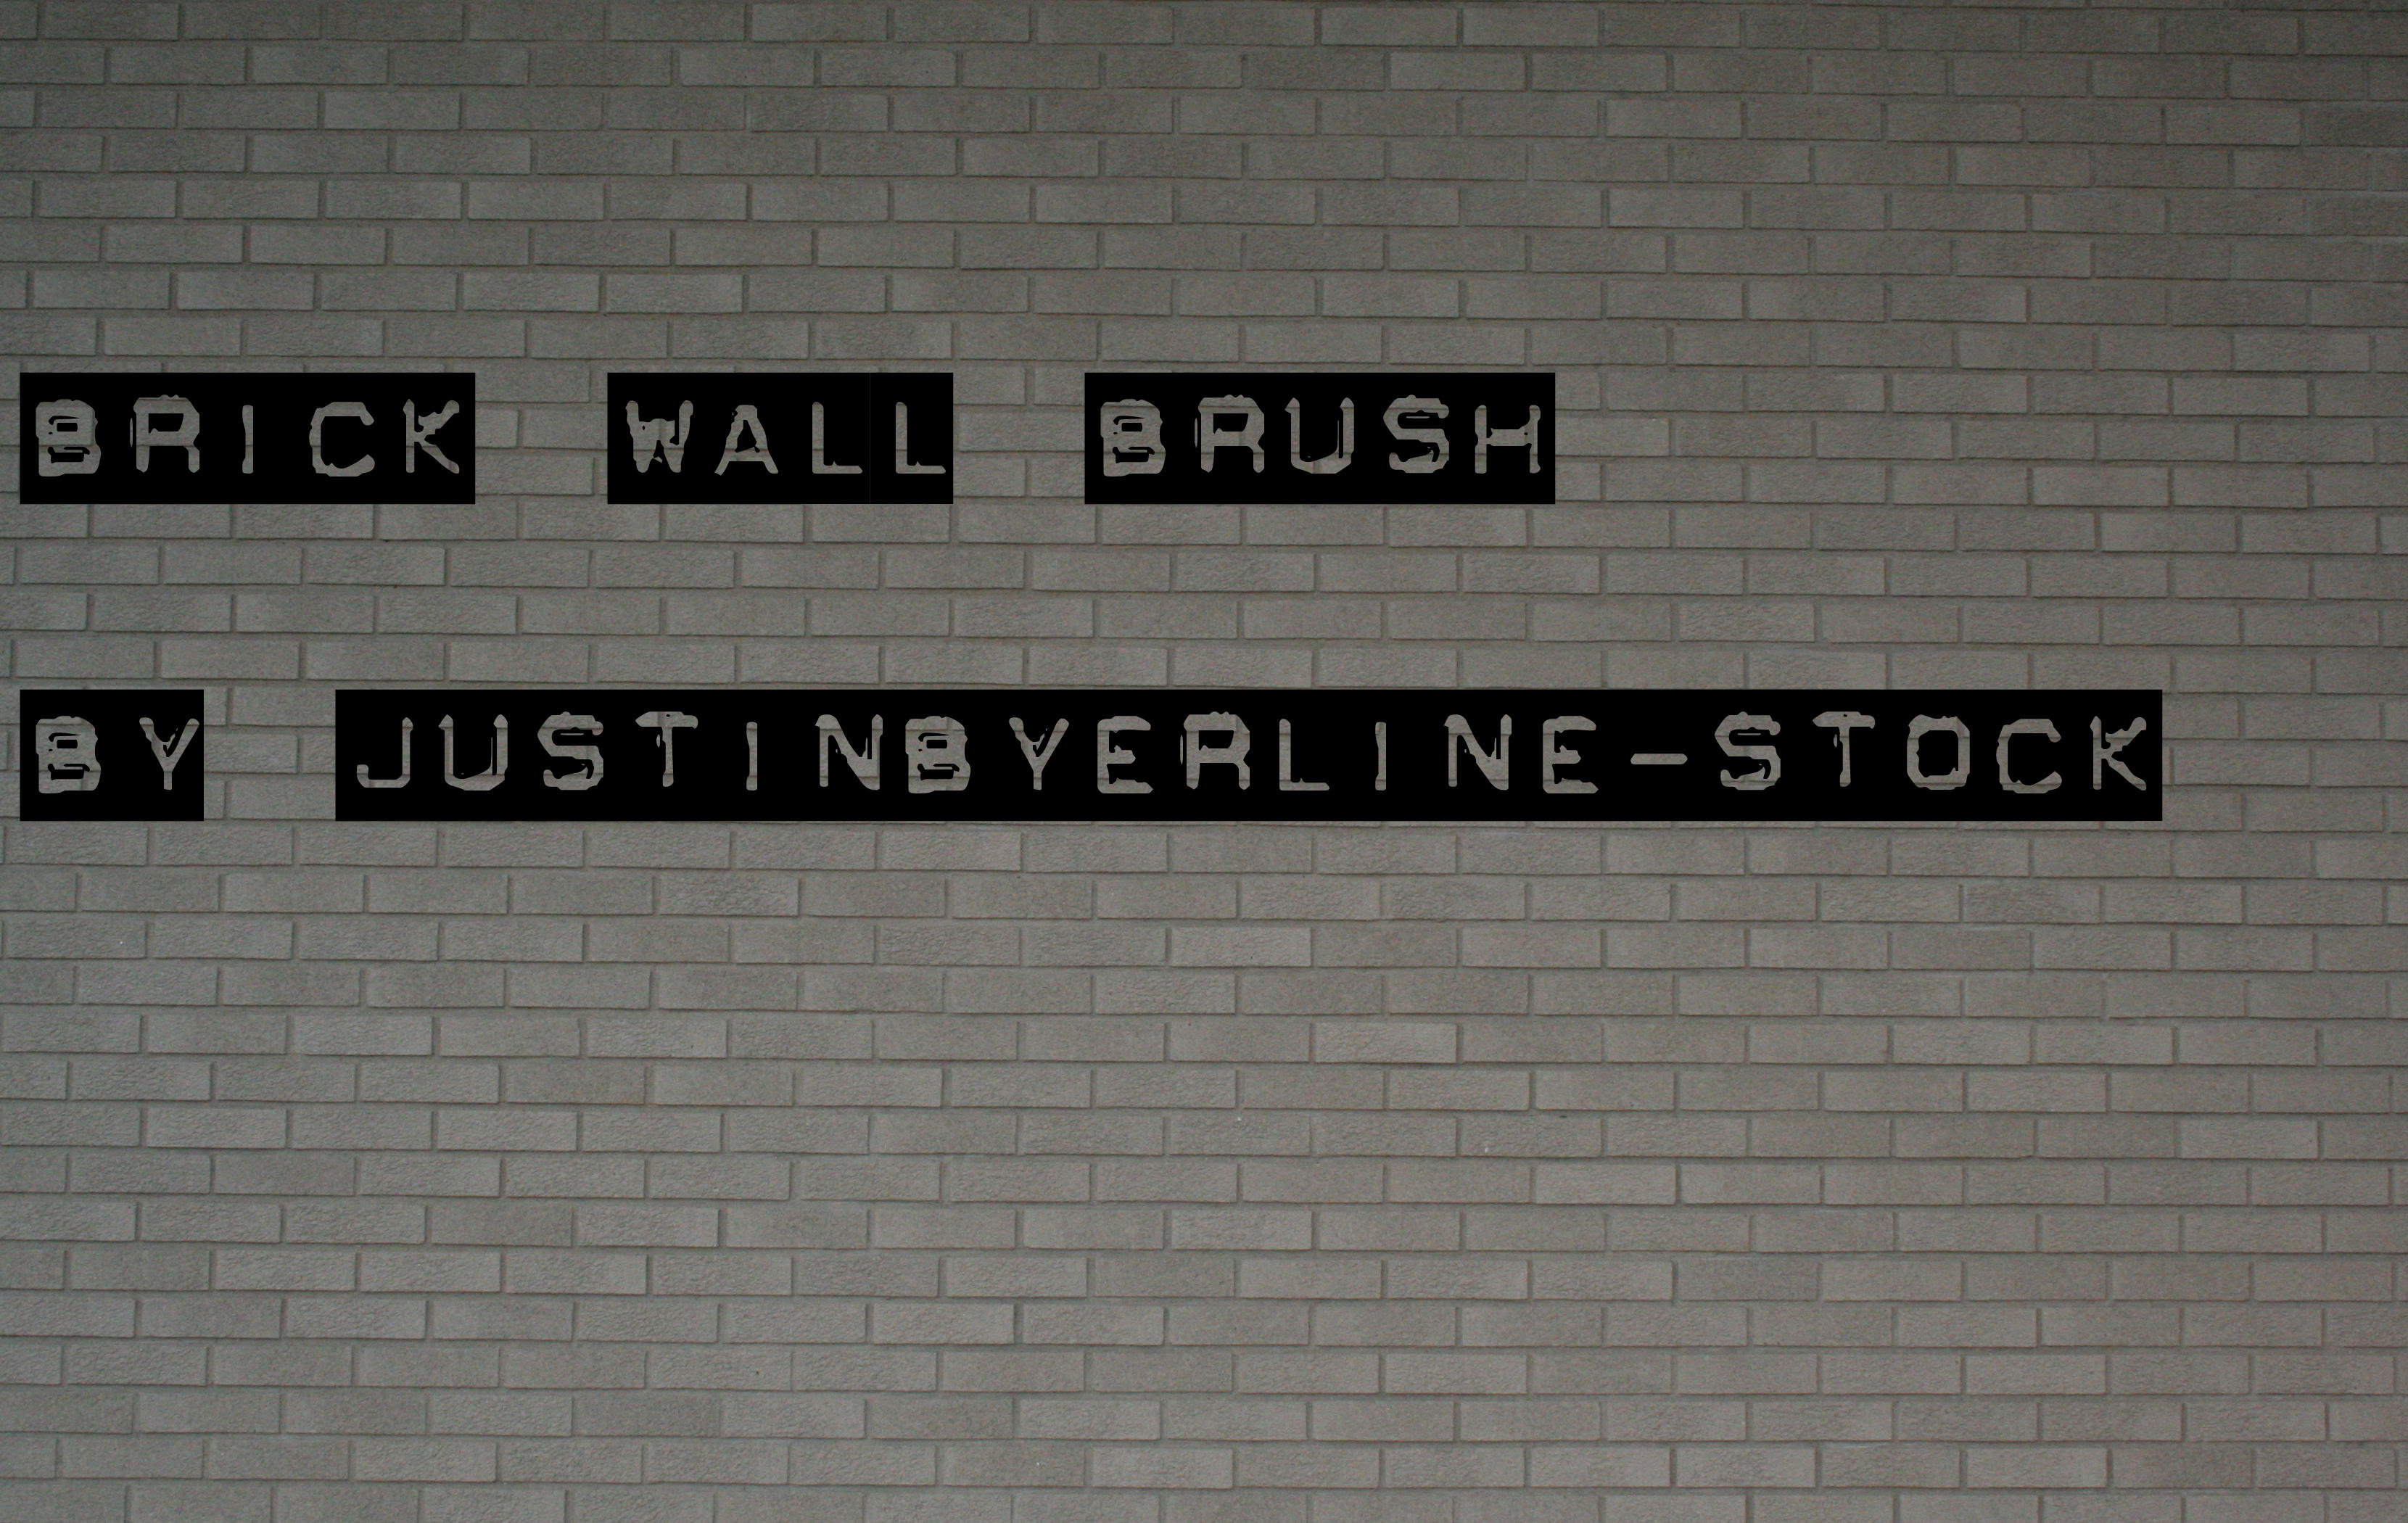 Brickwall Brush by JustinByerline-Stock